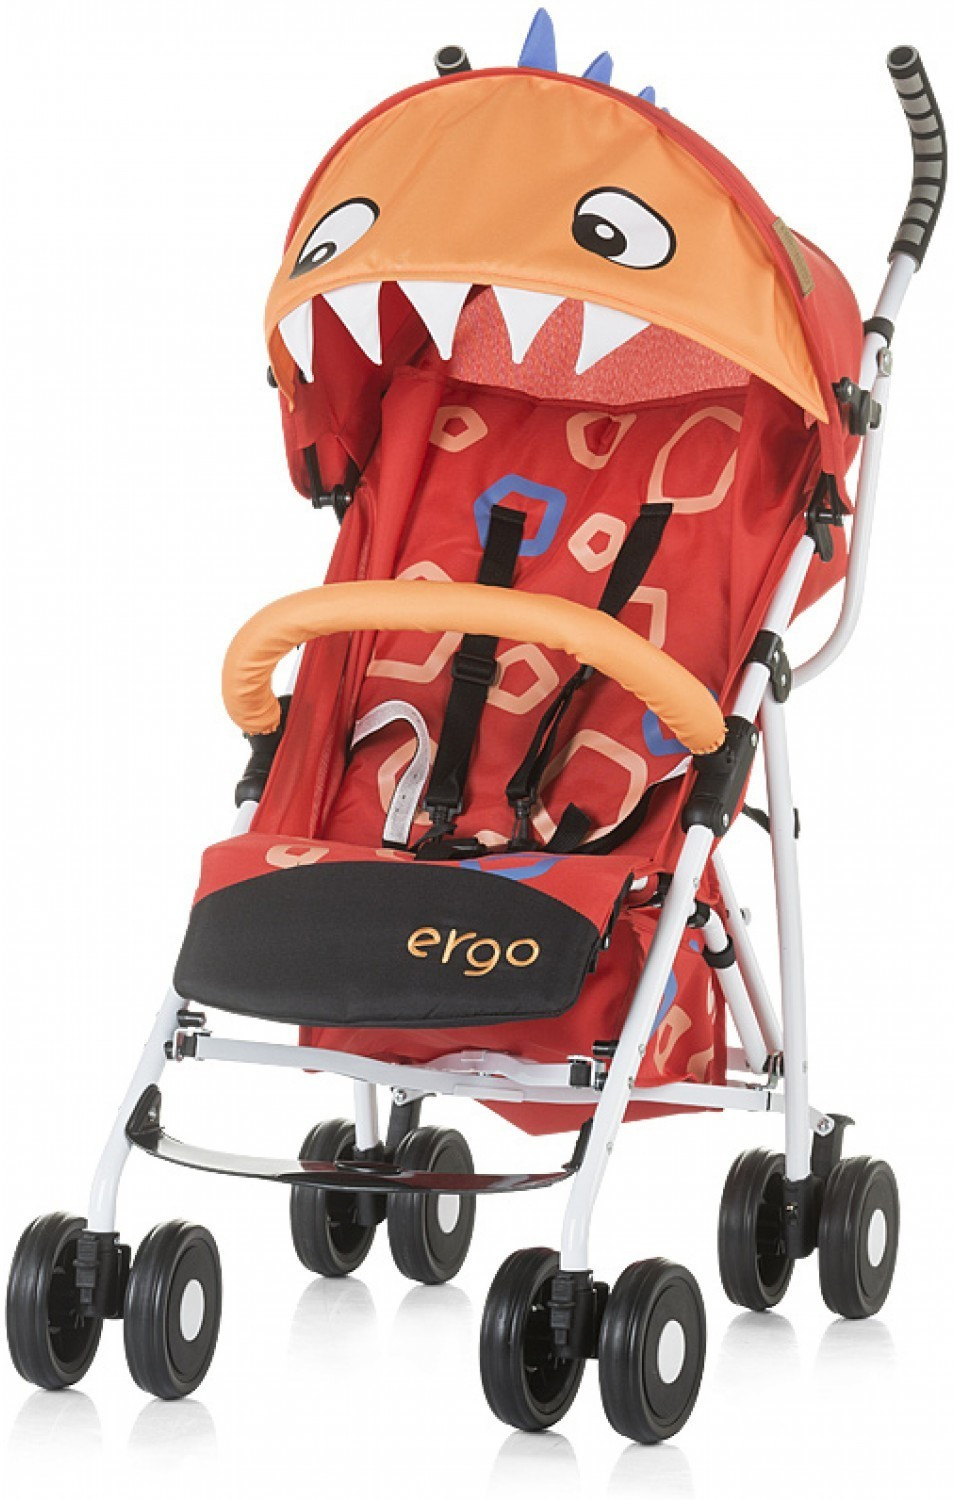 Chipolino Silla de paseo Ergo Red Baby Dragon